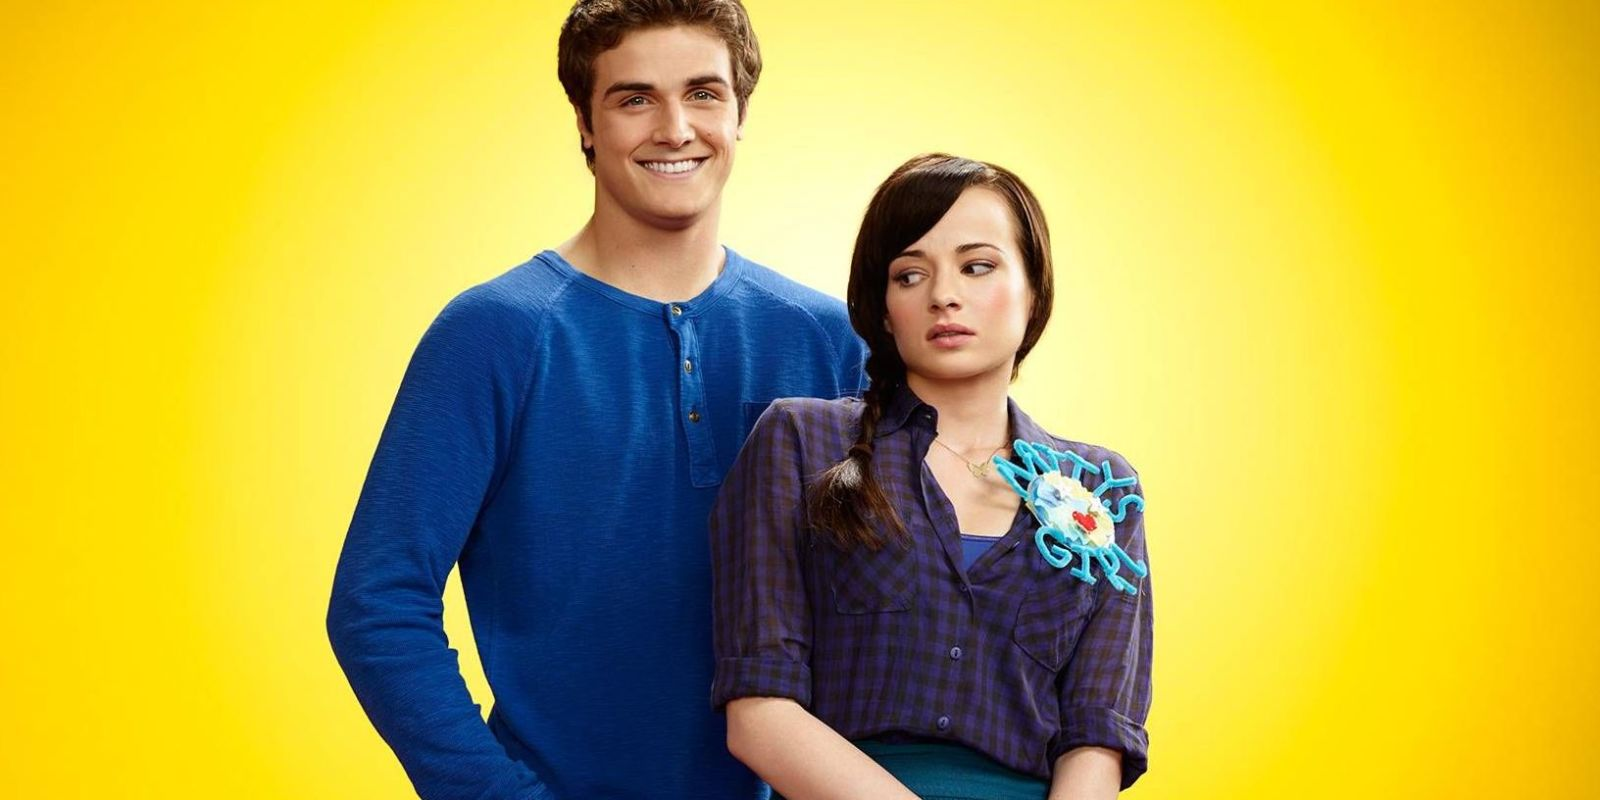 Are jenna and matty from awkward dating in real life. Are jenna and matty from awkward dating in real life.